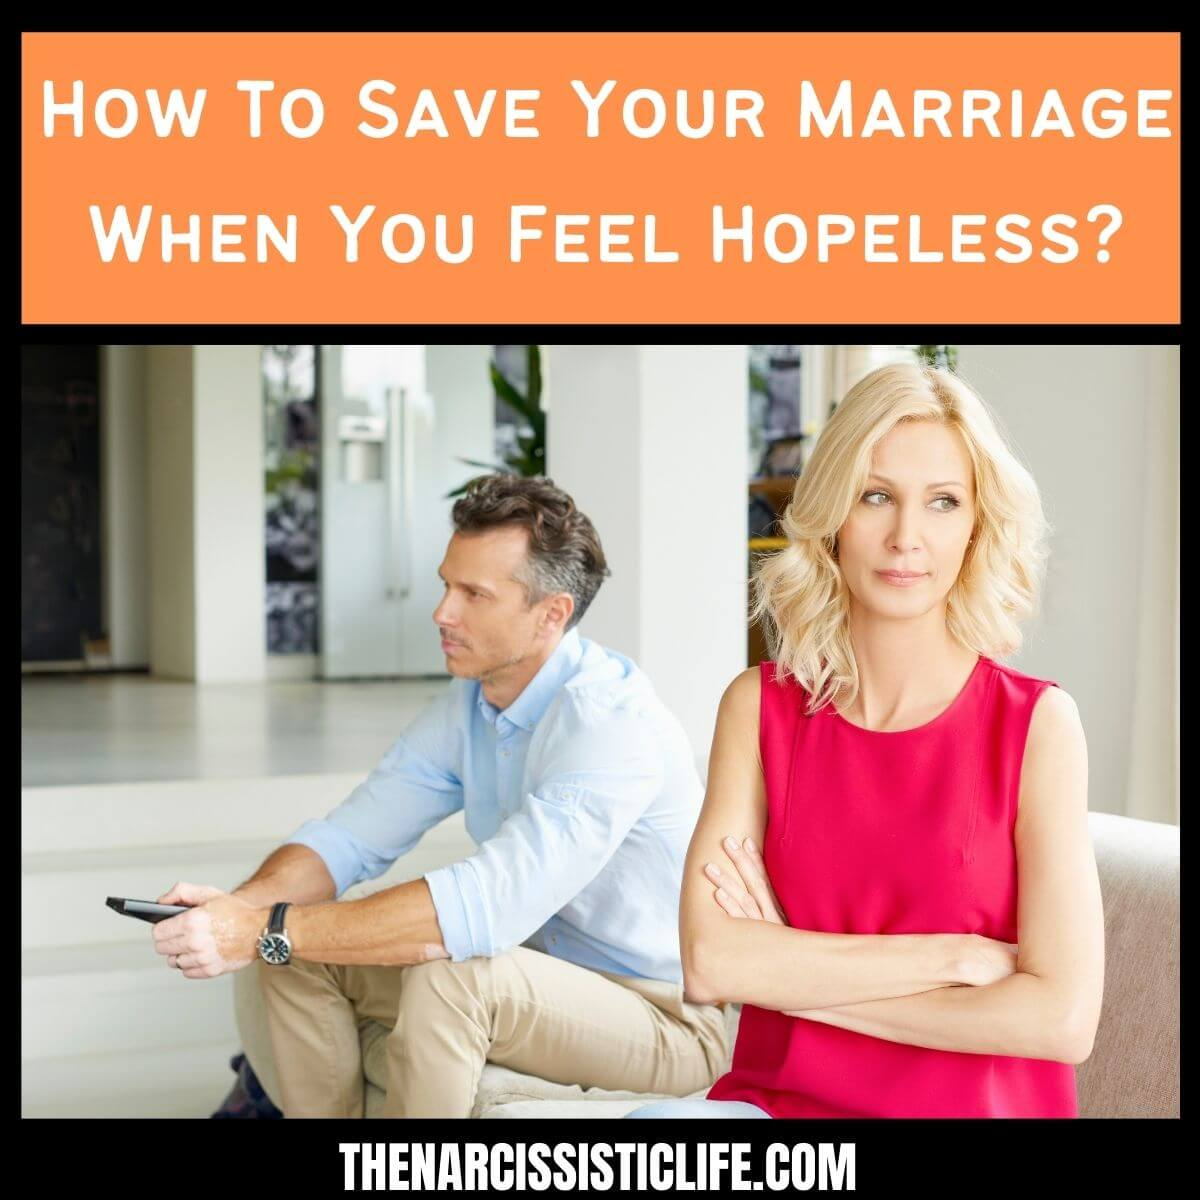 How To Save Your Marriage When You Feel Hopeless?